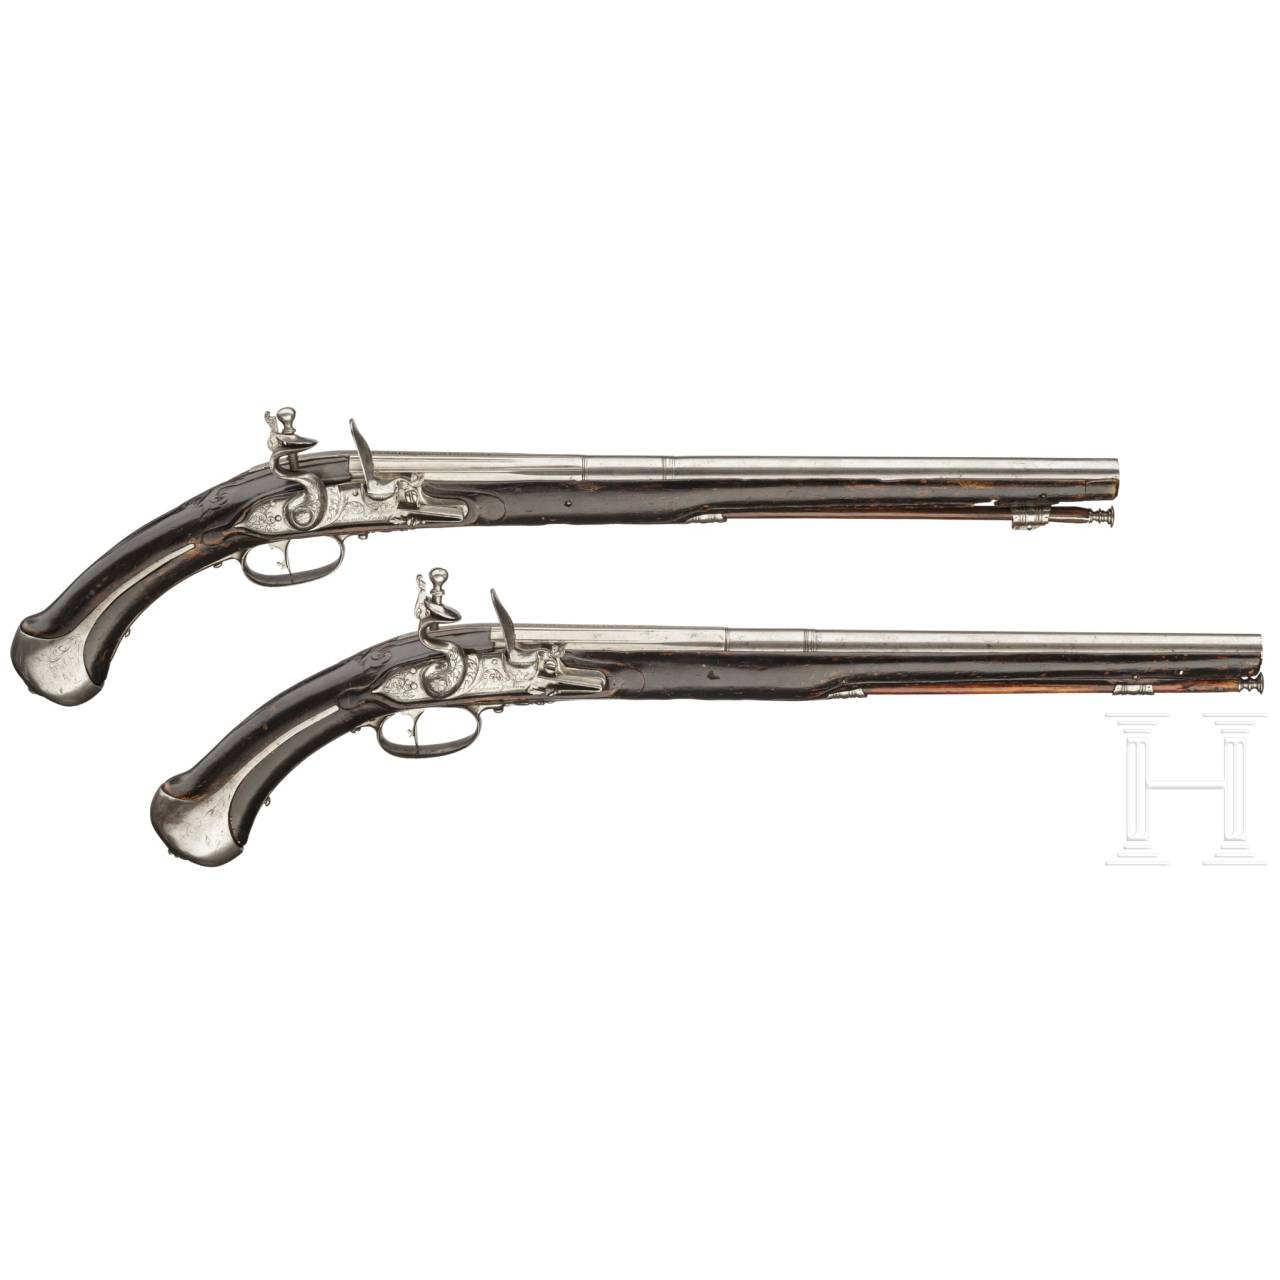 A pair of flintlock pistols, Giovanni Fondrino of Padua, circa 1680